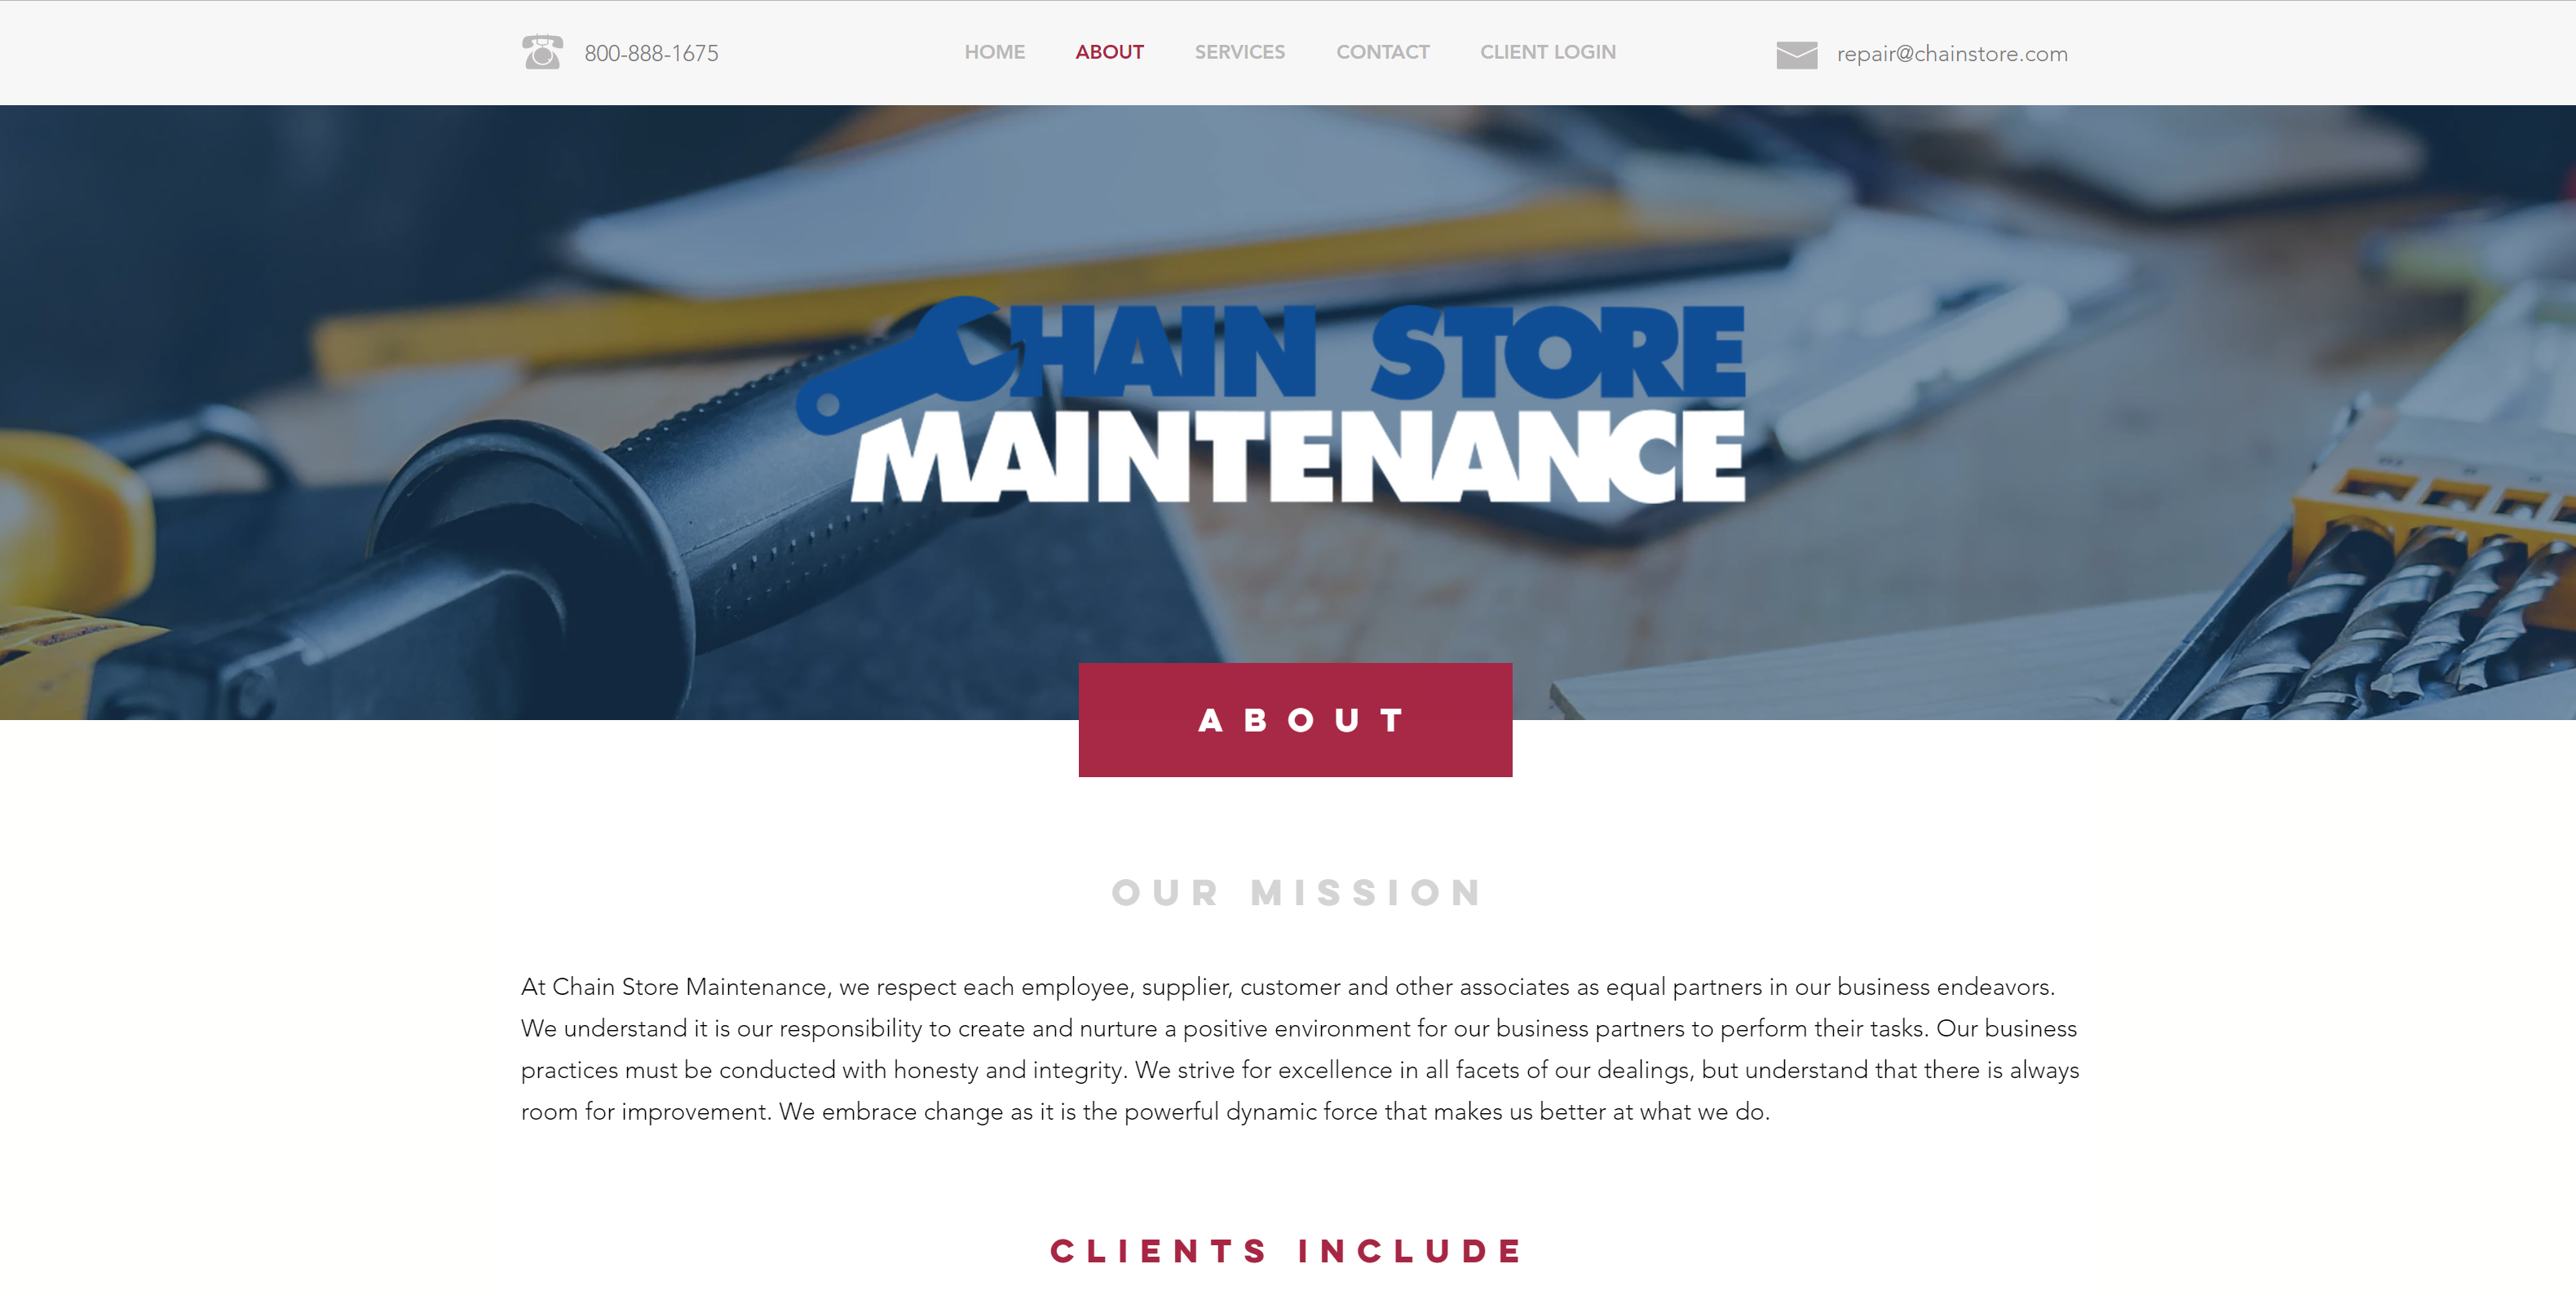 Sarah-Cas-Branding-and-Design-Website-Design-Chain Store Maintenance 1